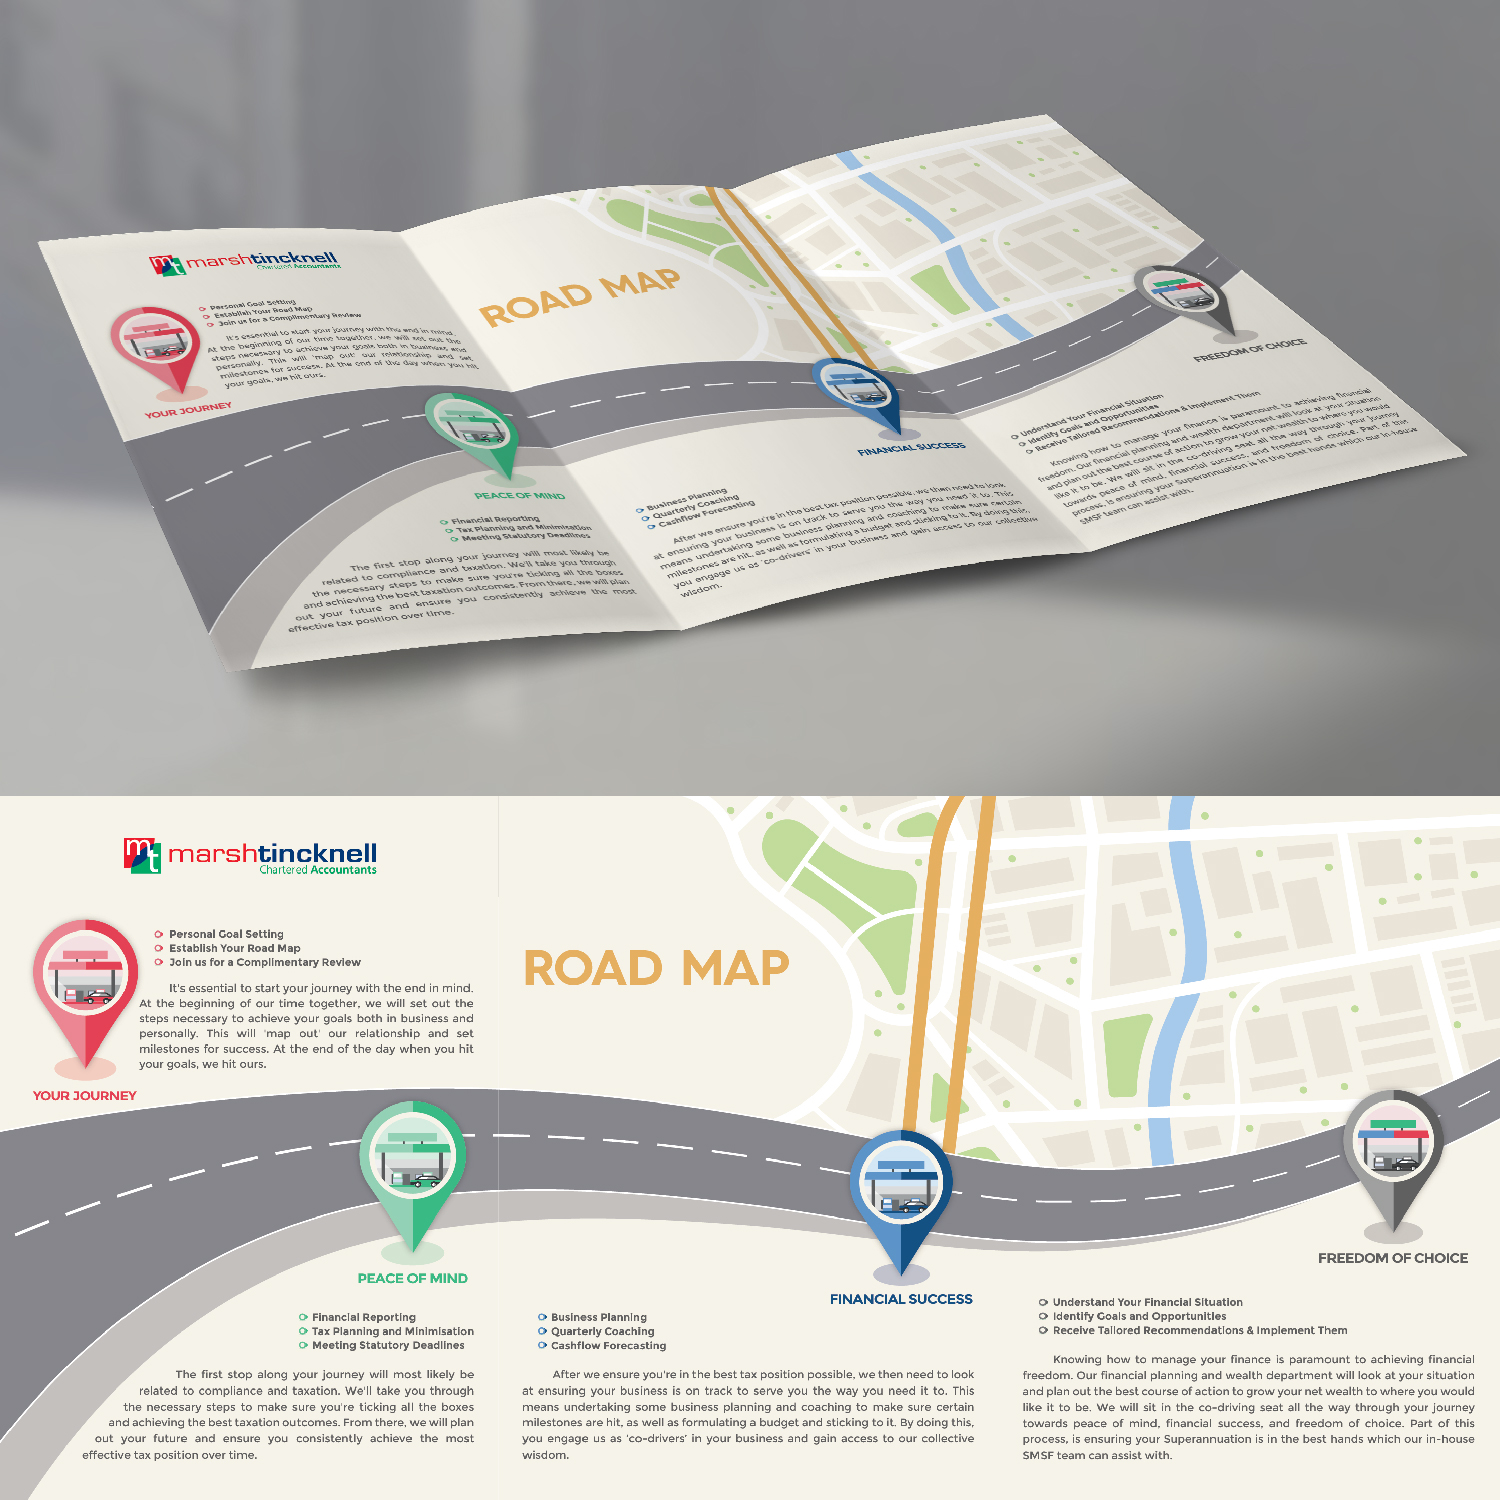 Upmarket, Playful, Accountant Infographic Design for a Company by